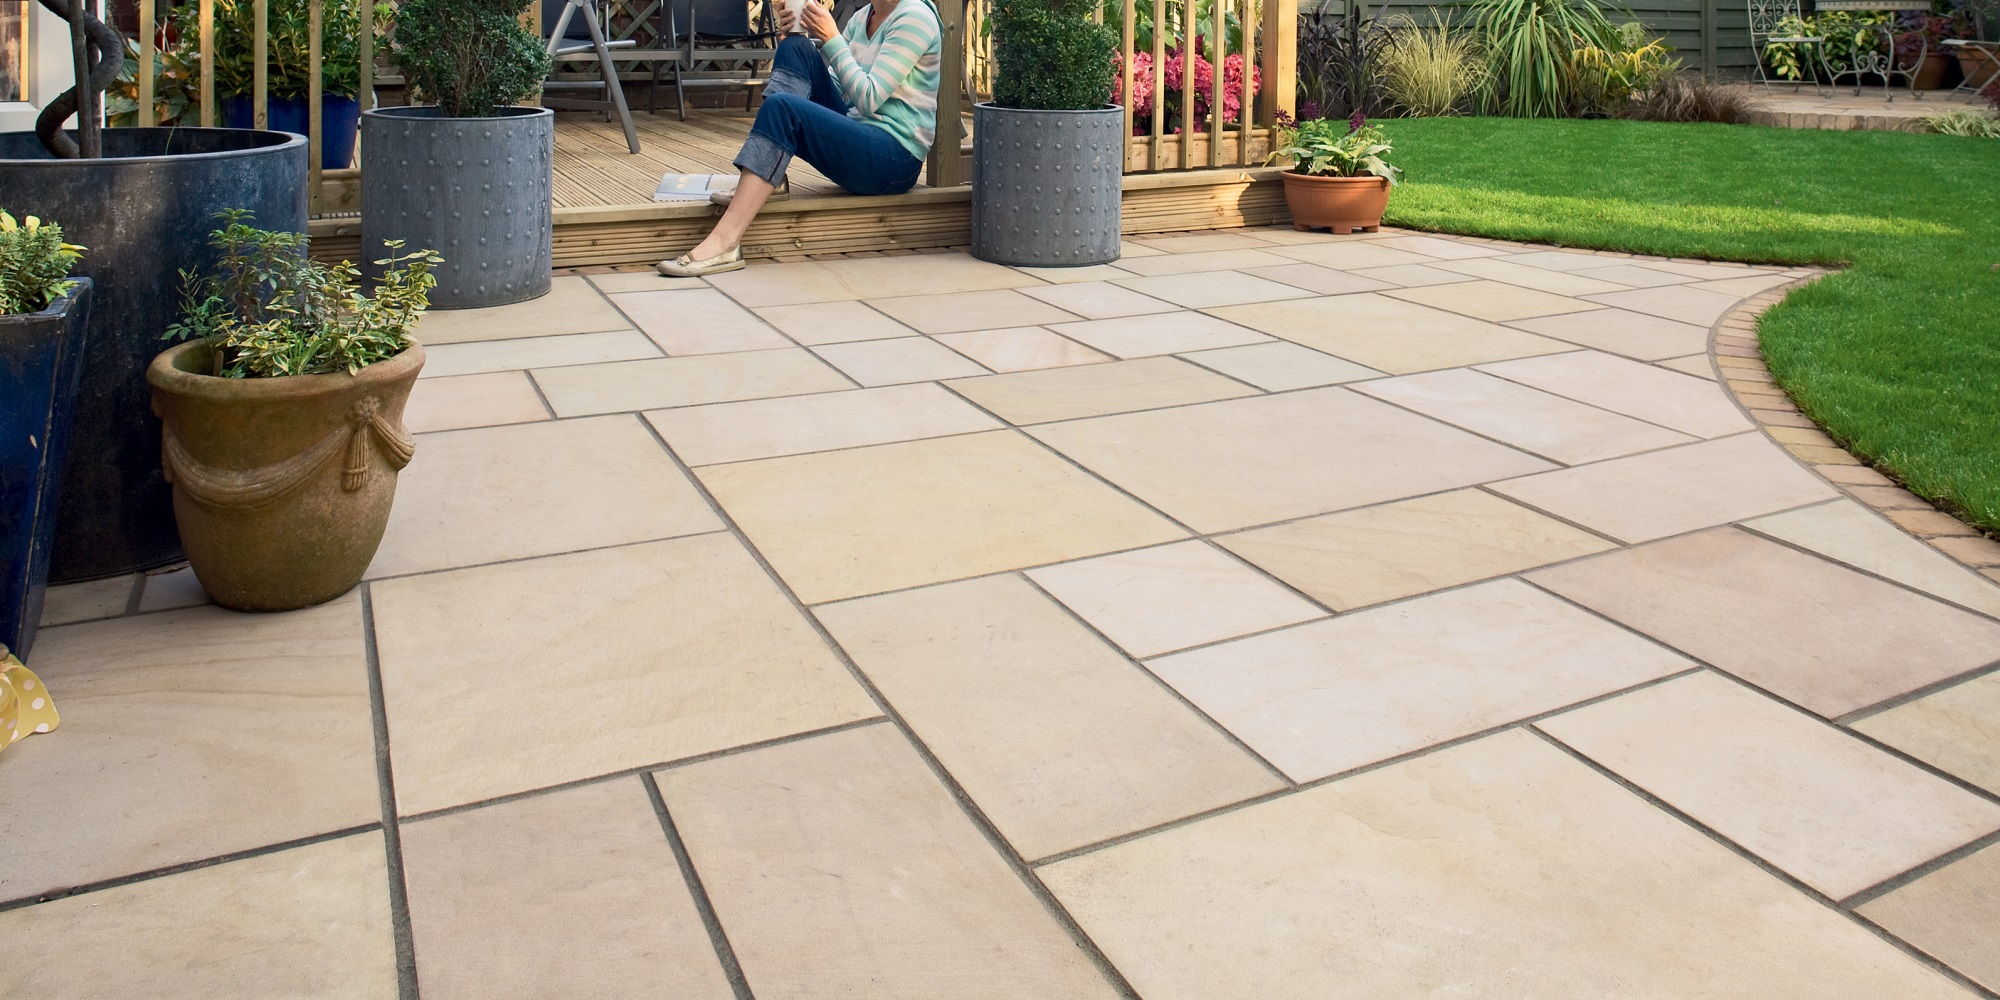 Garden patio design in Chandlers Ford